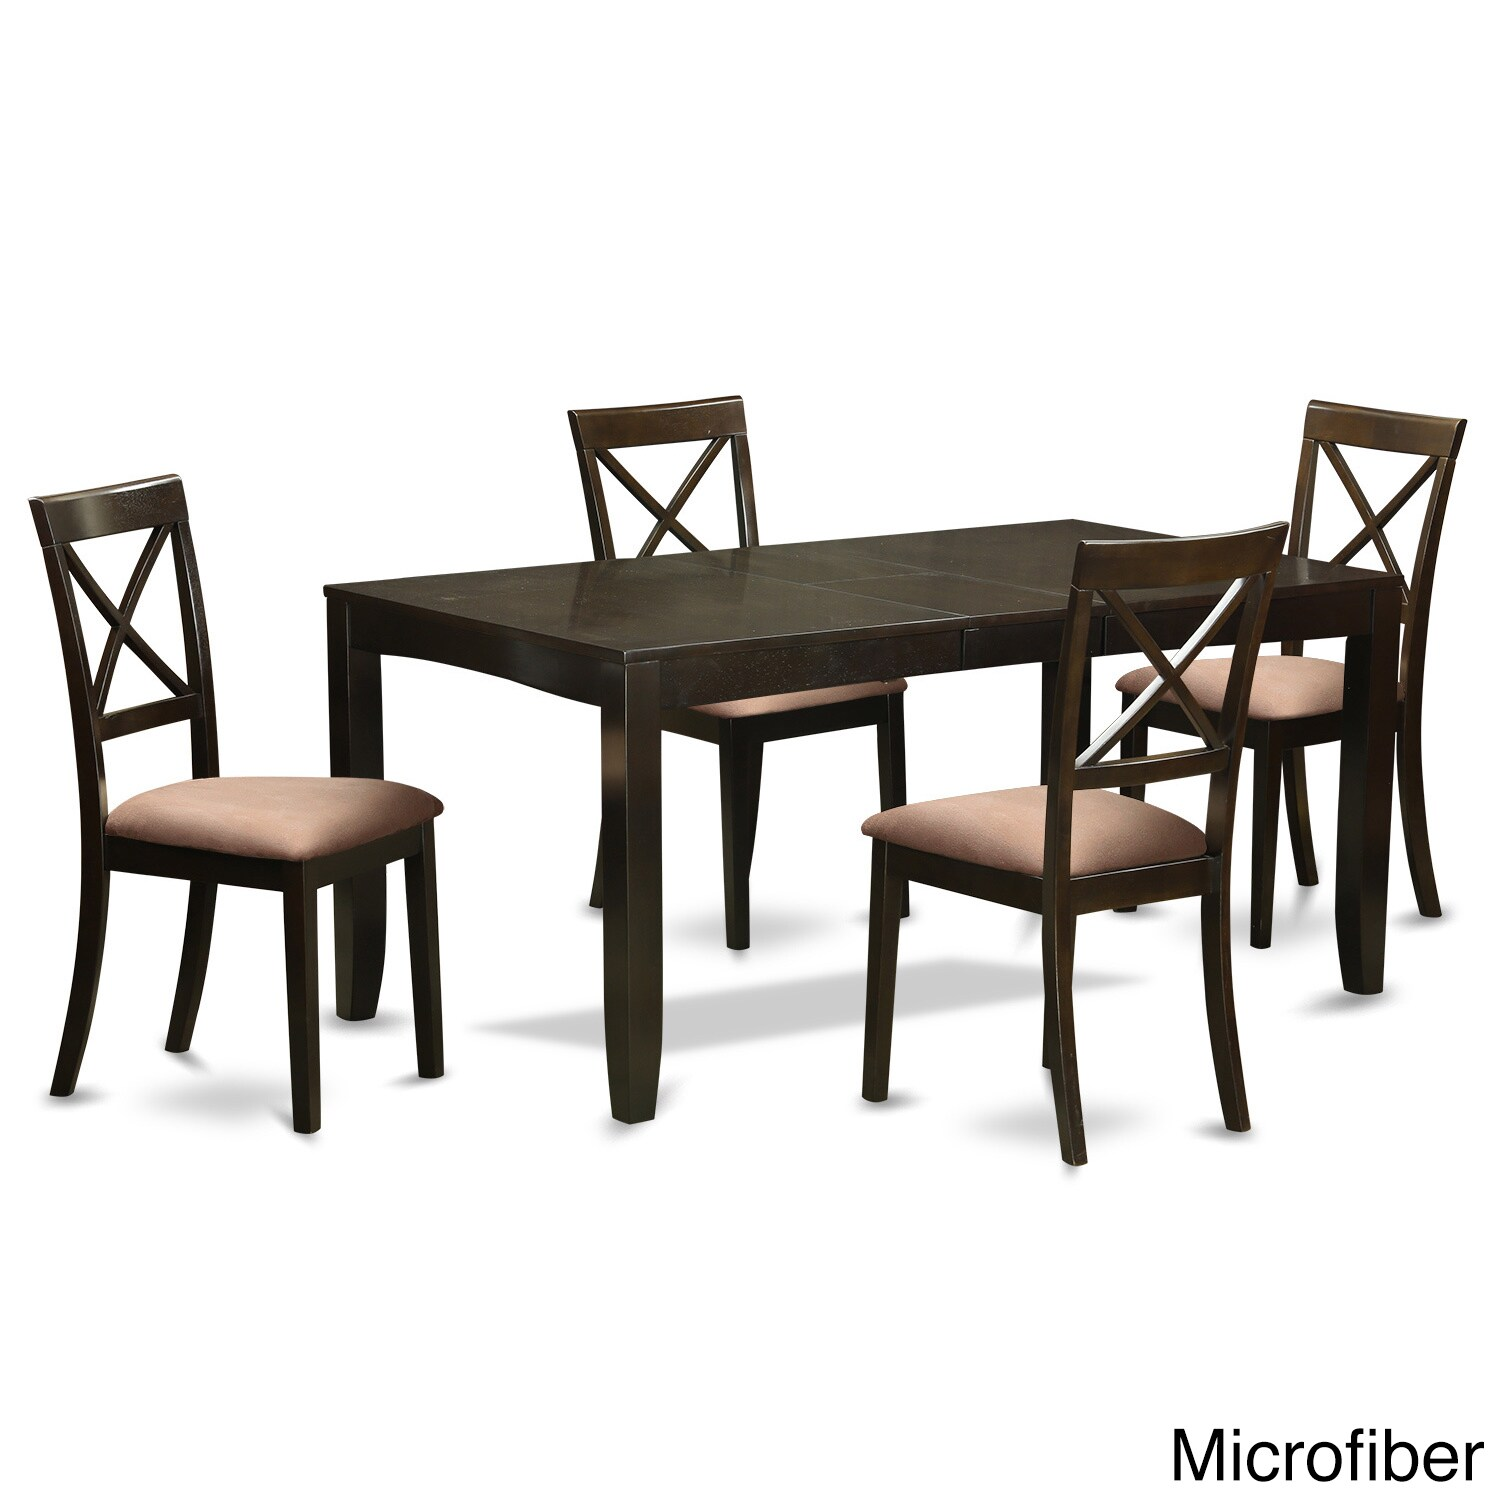 5 Piece Dining Table Images Dining Table Ideas : LYBO5 CAP 5 Piece dining table set for 4 dining table with Leaf Plus 4 chairs for dining room 8207e133 8968 46b6 bf6b 7d98c1922520 from sorahana.info size 1500 x 1500 jpeg 358kB